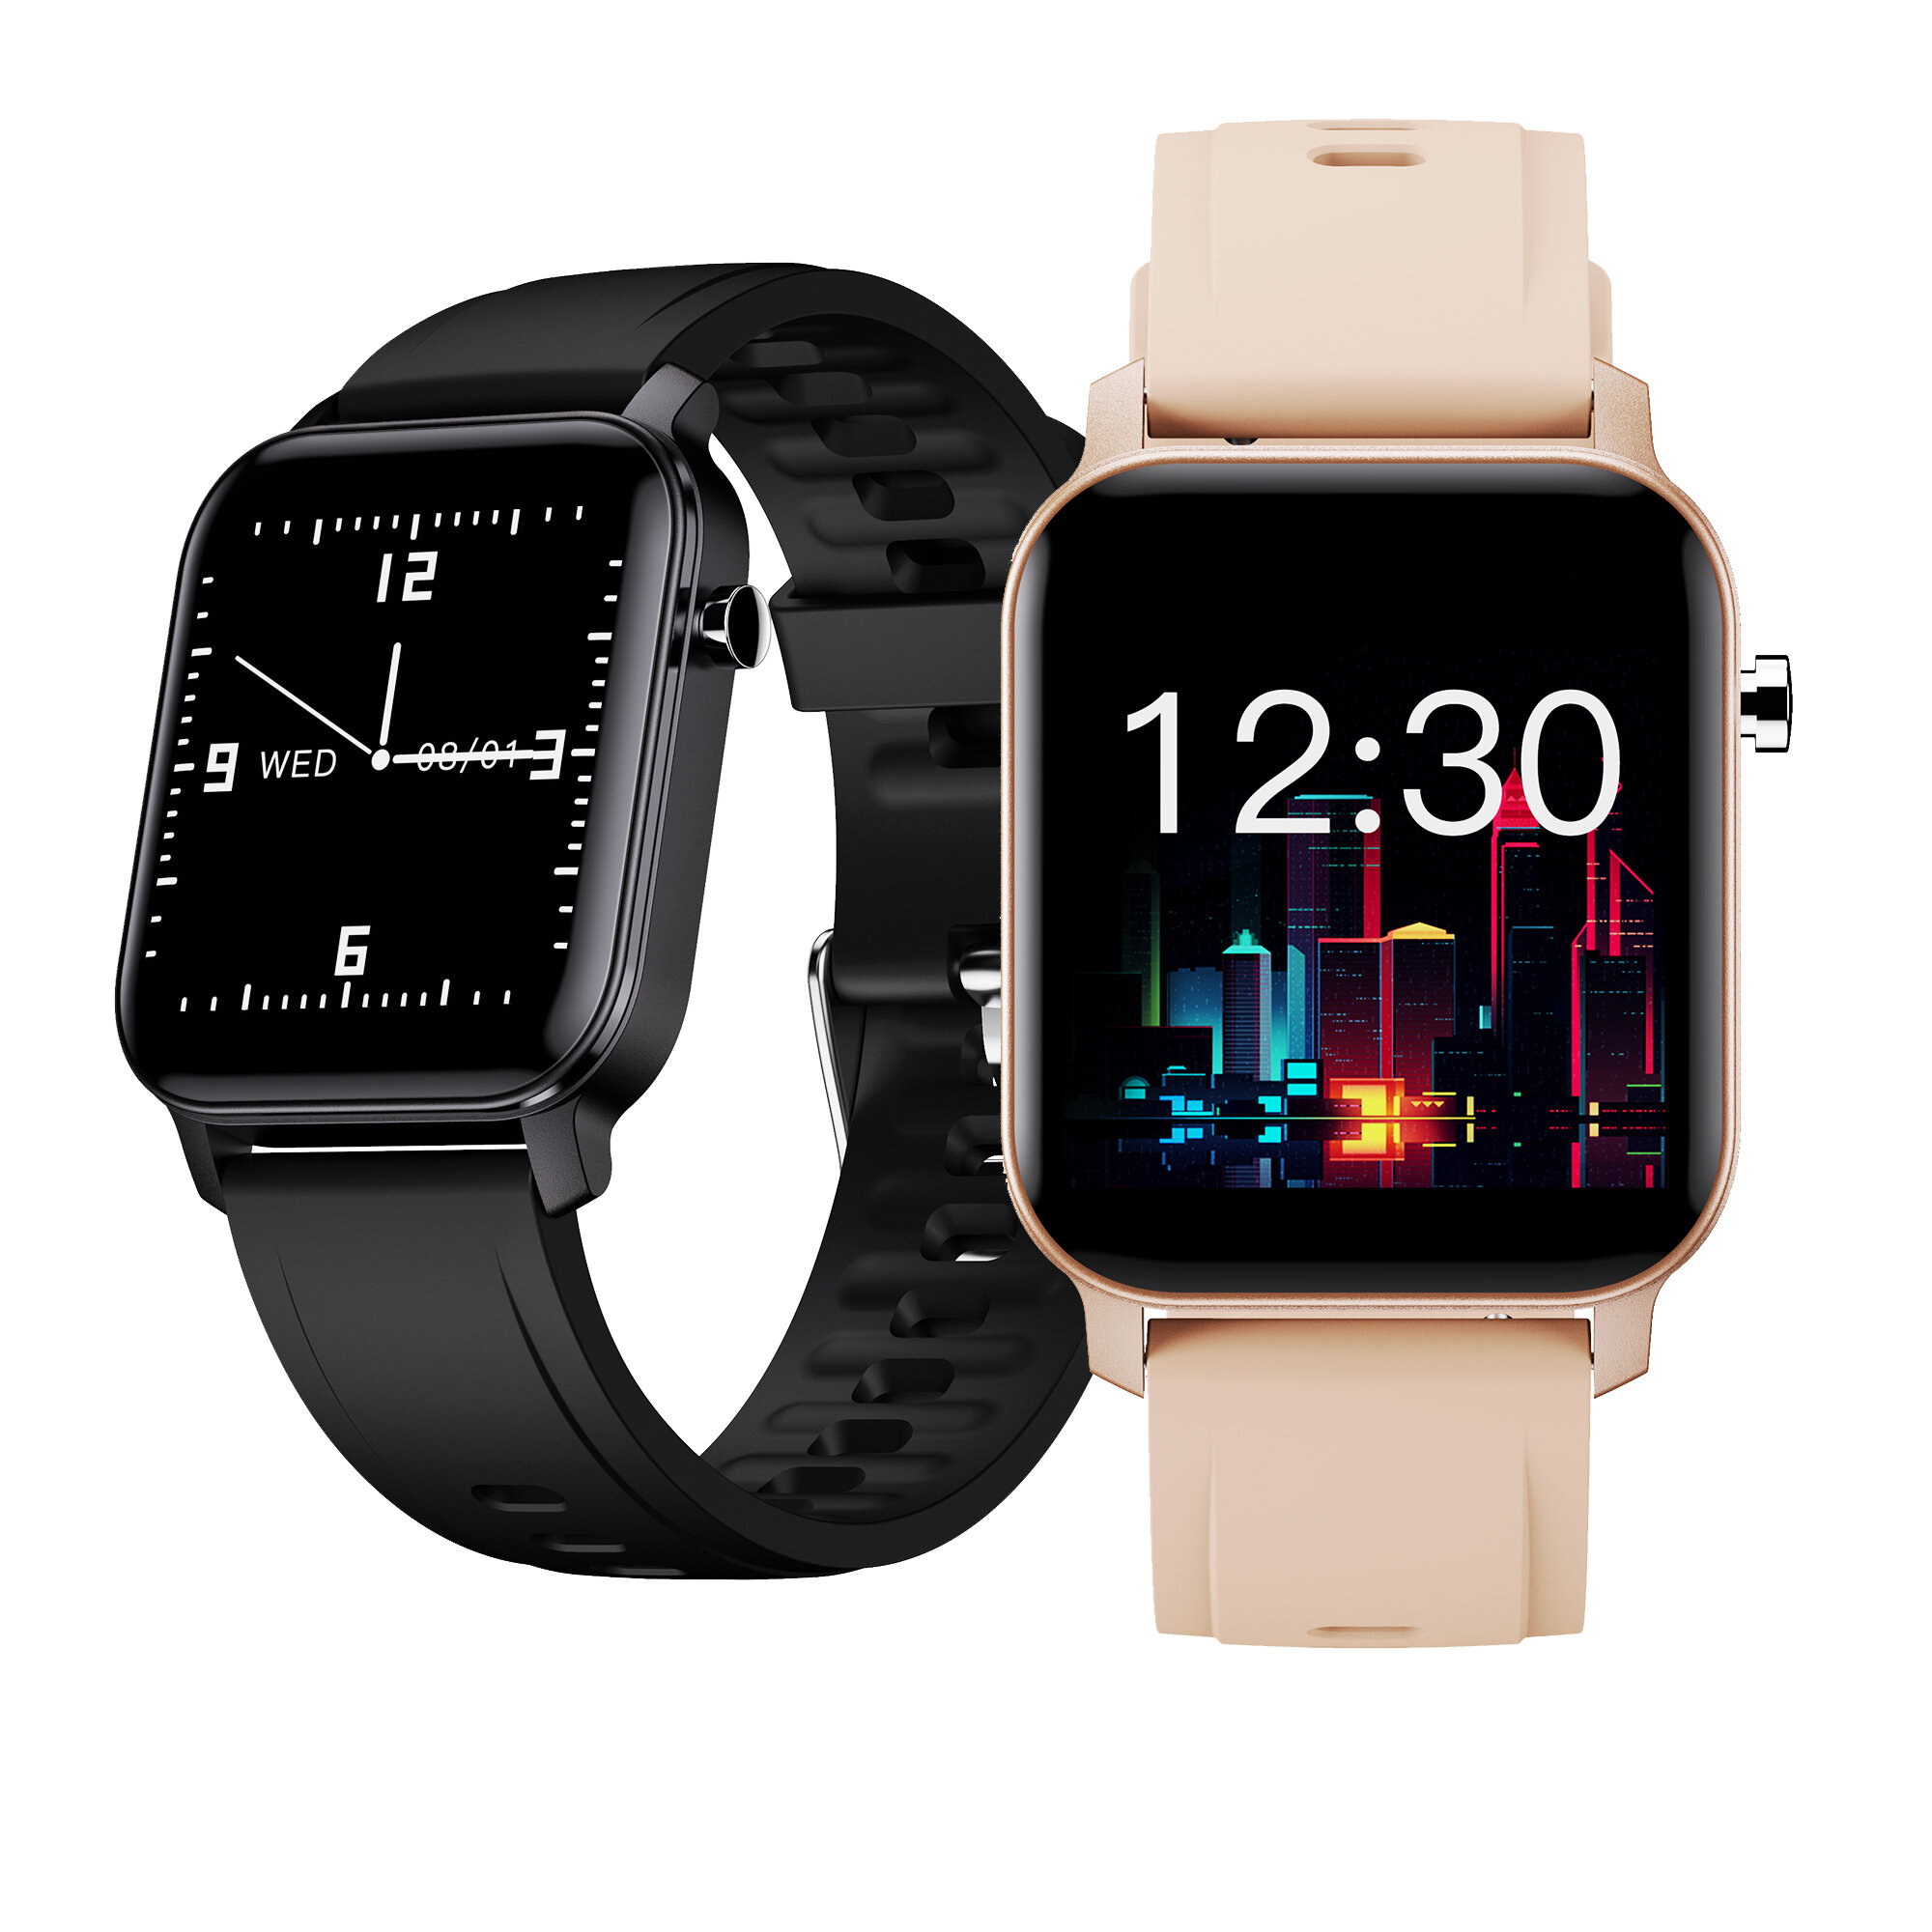 [bluetooth 5.0]Kospet M2 1.4 Inch 320*320px Full Touch Screen Heart Rate Blood Oxygen Monitor Breathe Training Customized Watch Face IP68 Waterproof Smart Watch COD